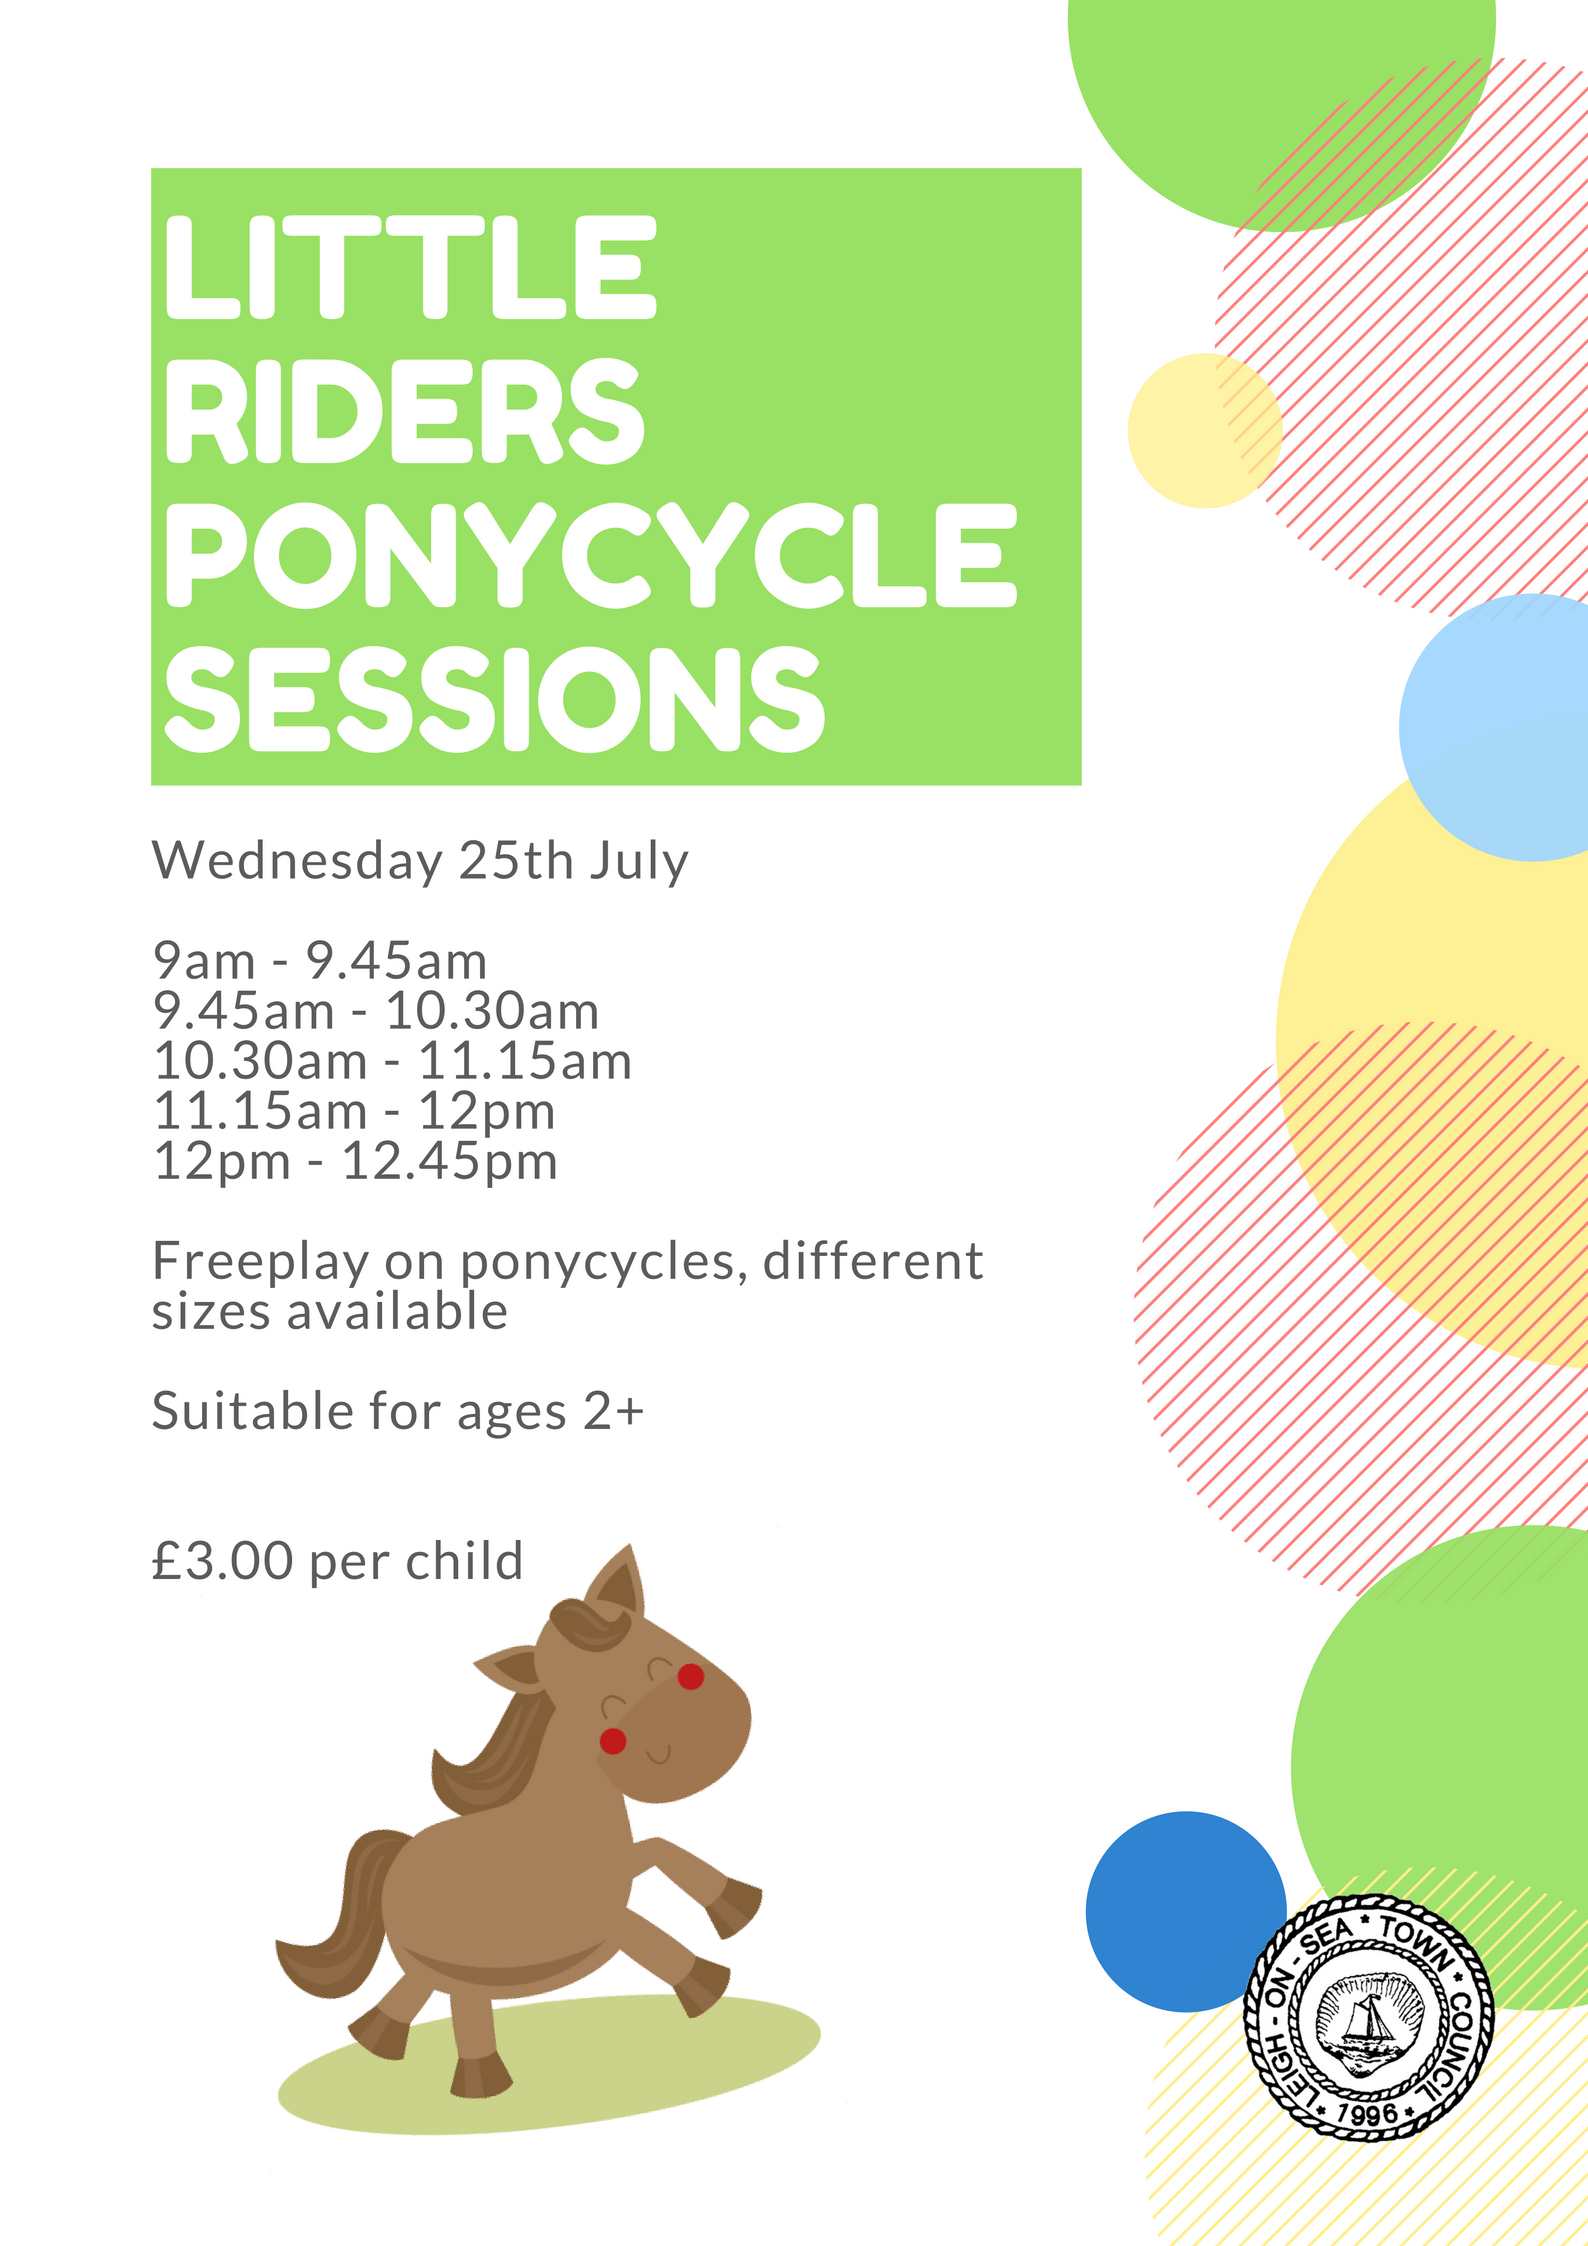 Little Riders Ponycycle Sessions